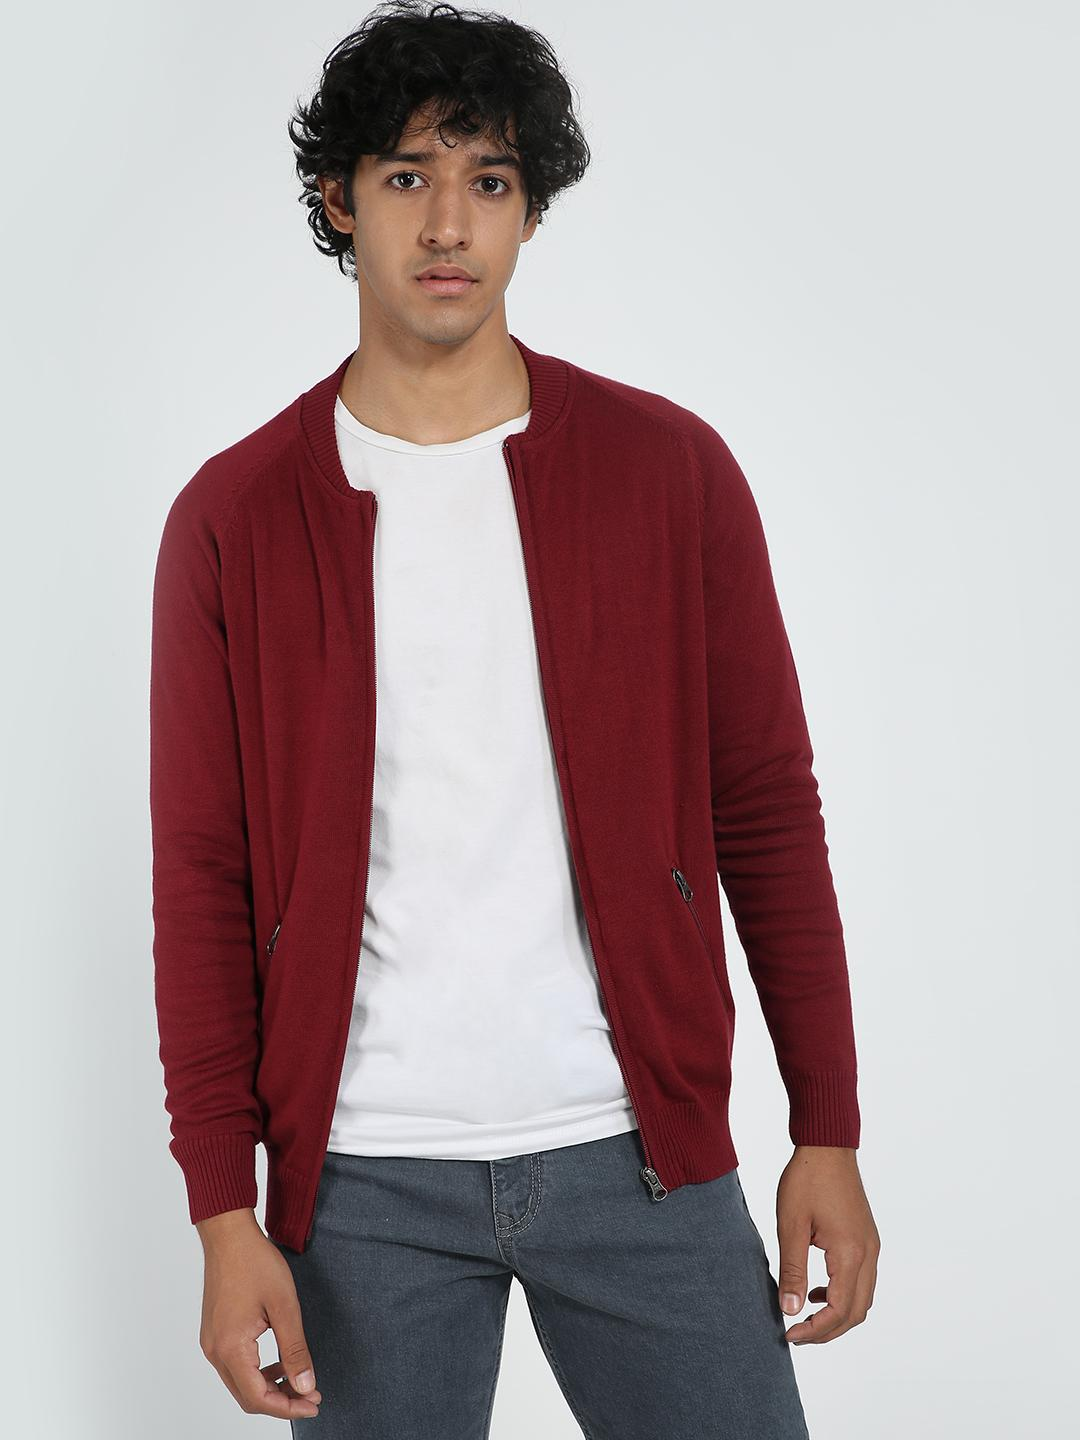 Blue Saint Maroon Men's Maroon Regular Fit Cardigan 1